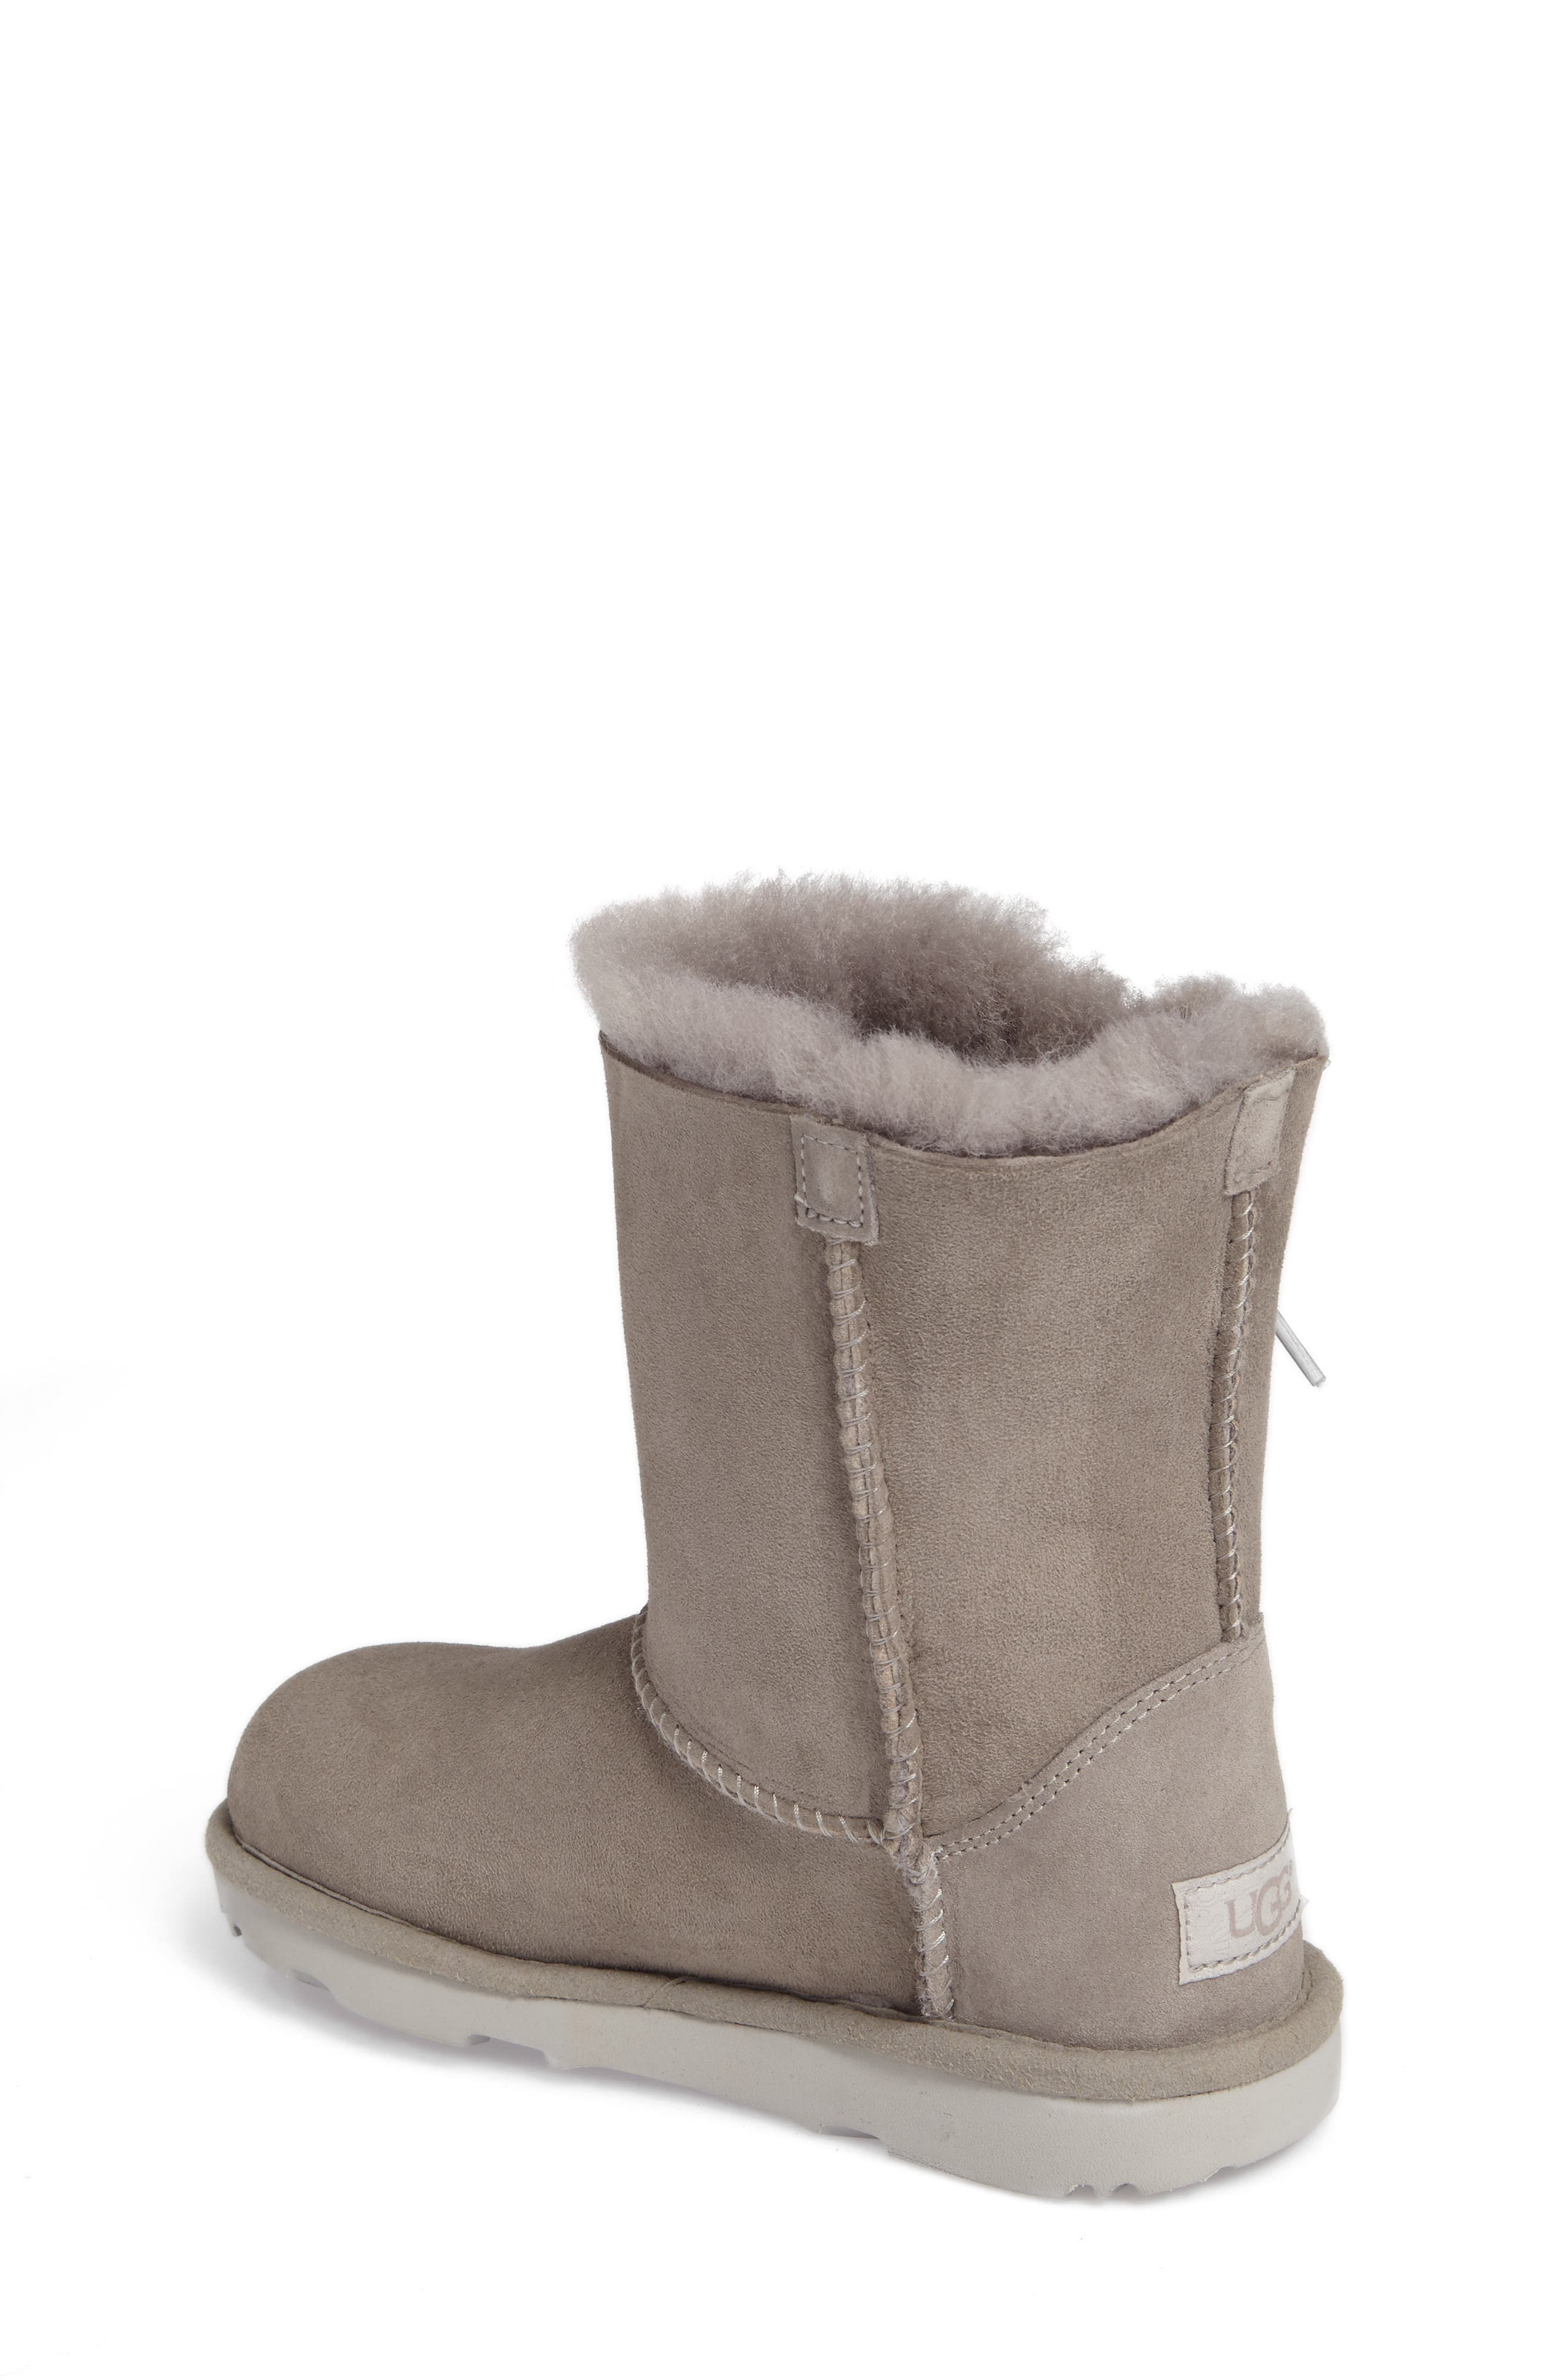 Alternate Image 2  - UGG® Pala Water-Resistant Genuine Shearling Boot (Walker, Toddler, Little Kid & Big Kid)